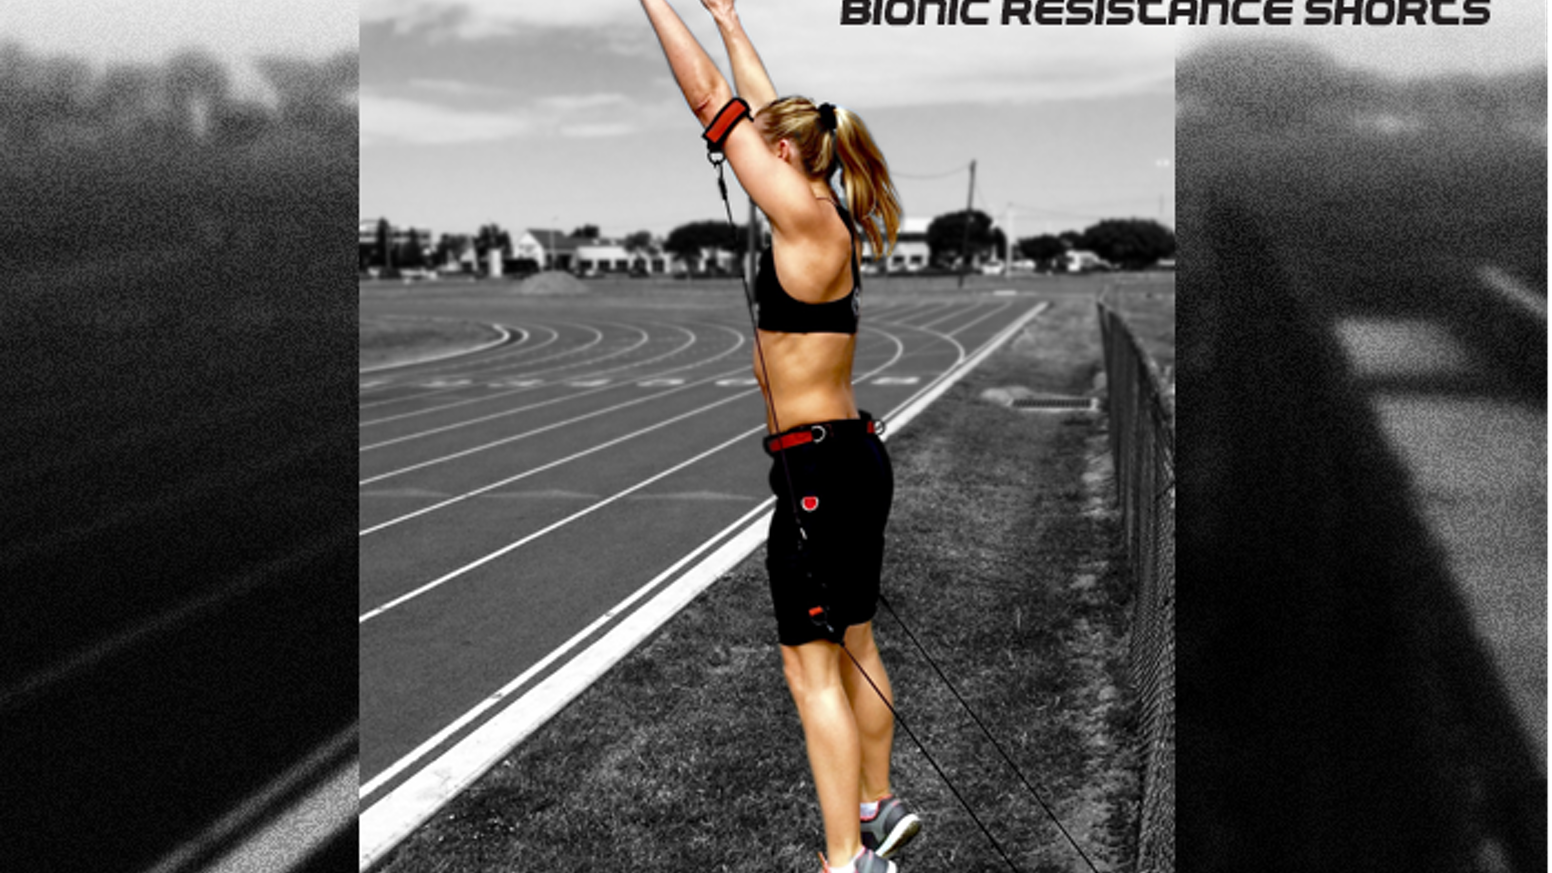 Apex Bionic Resistance Shorts  Enhance Workouts by 100%+ by Adrian